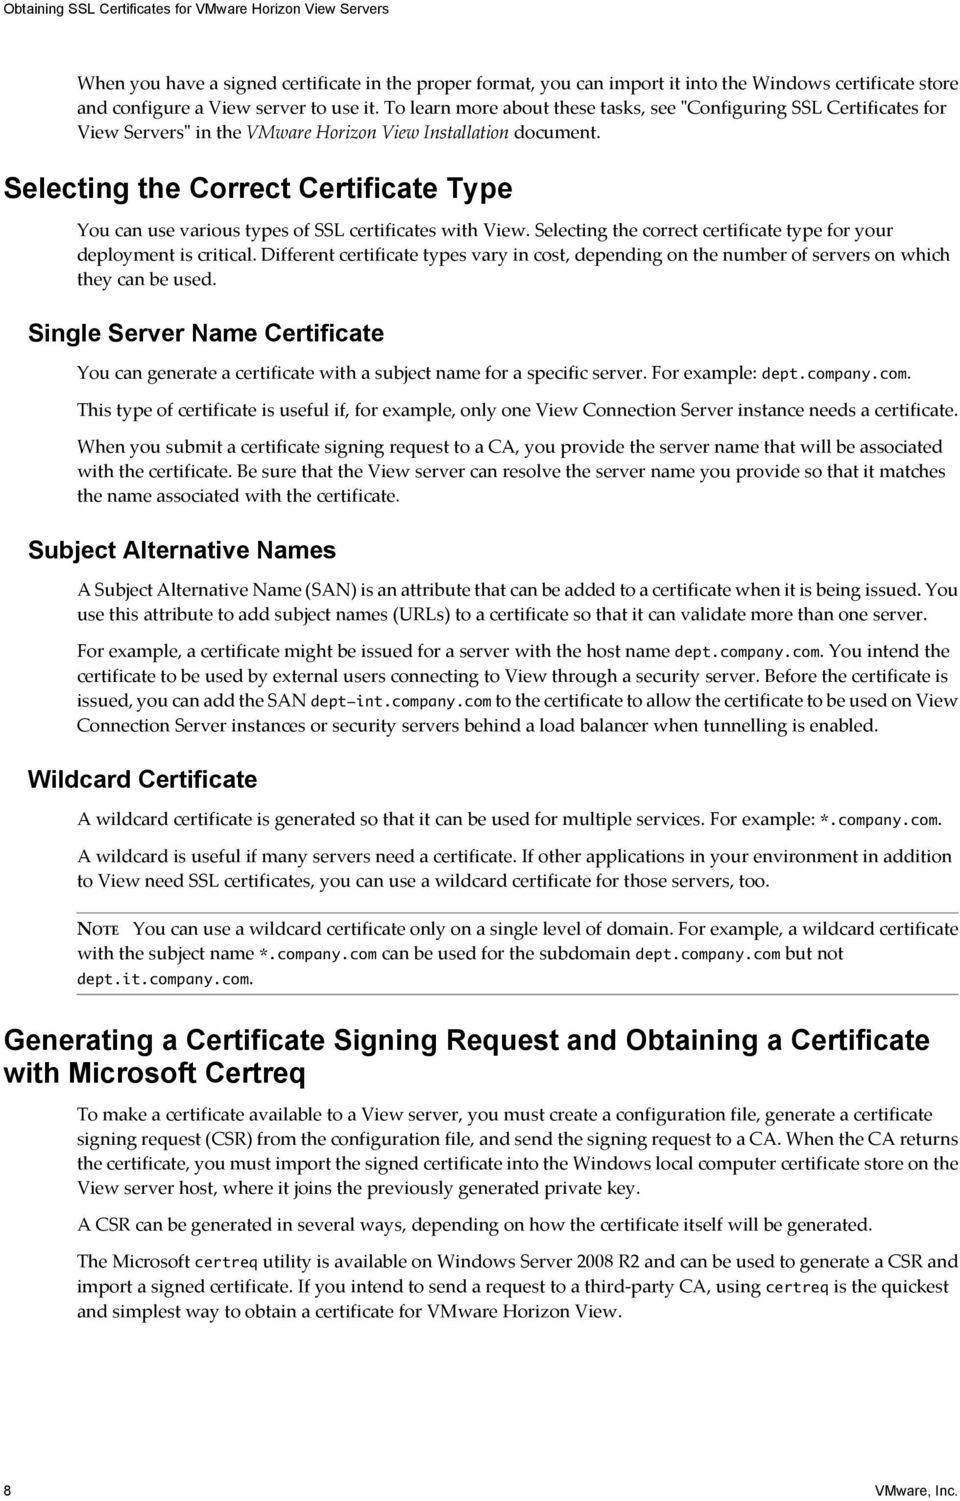 Obtaining Ssl Certificates For Vmware Horizon View Servers Pdf